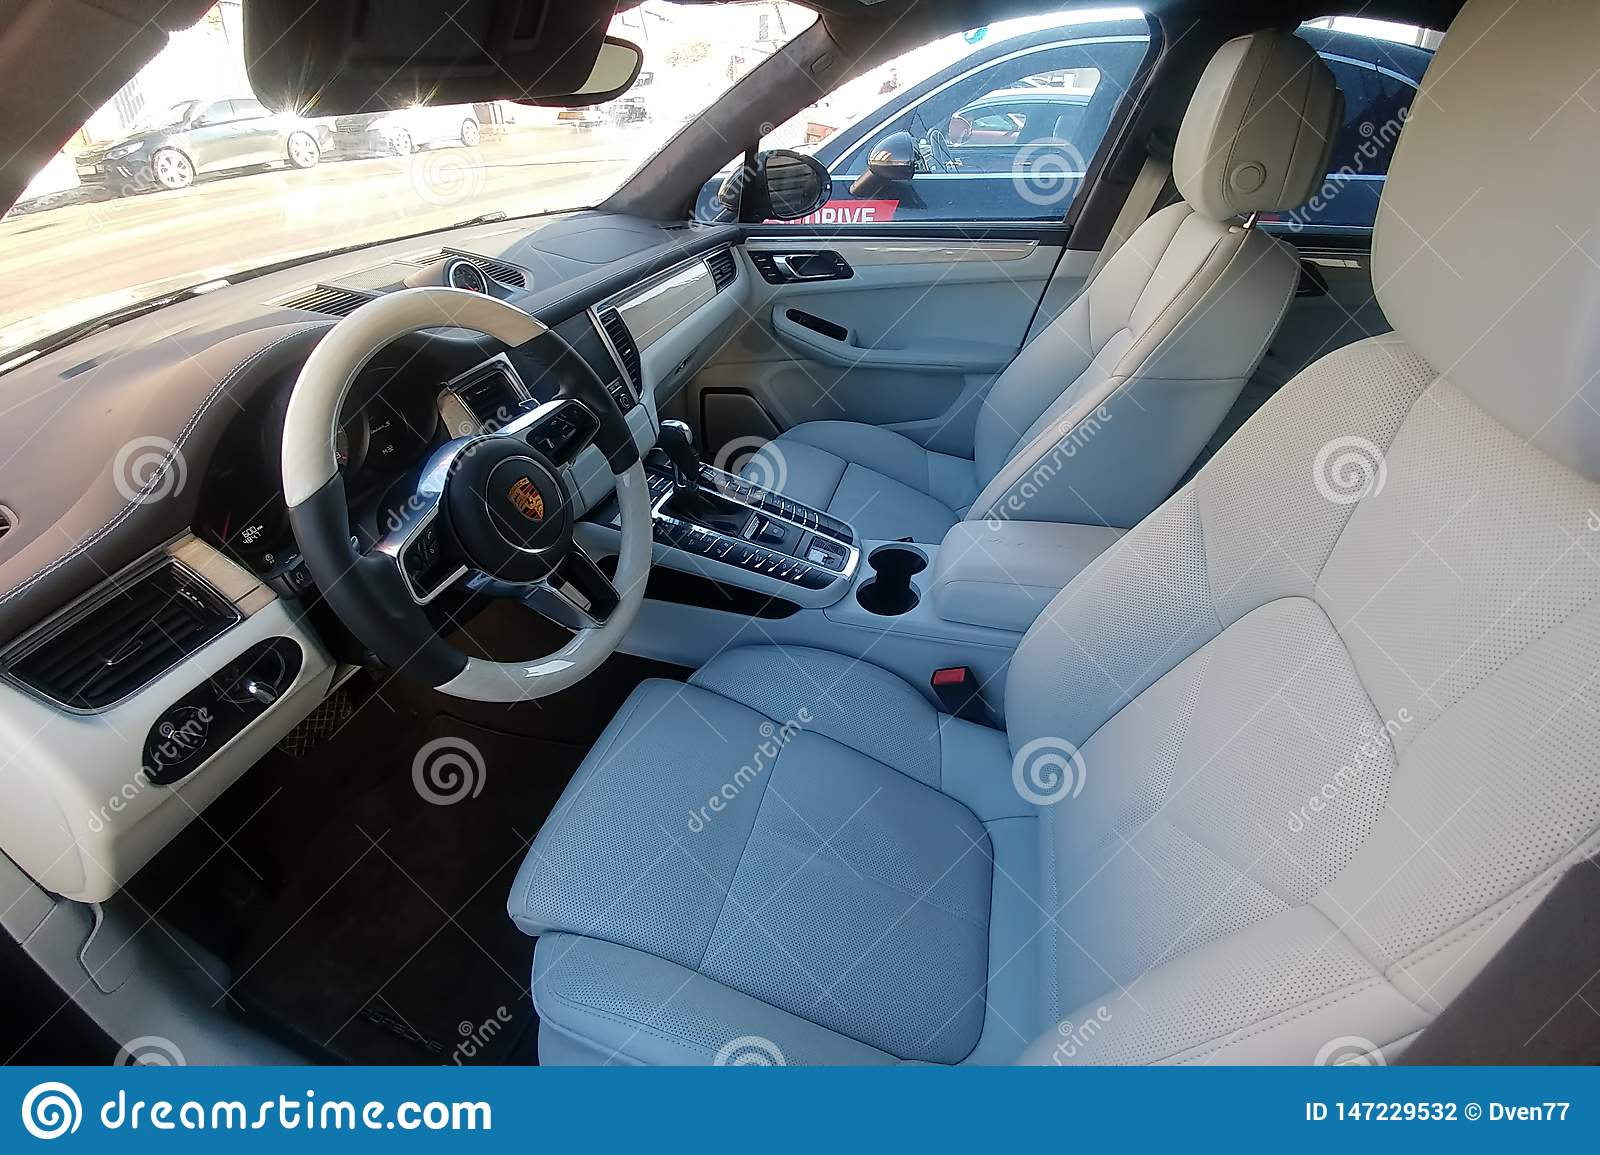 Moscow Russia May 09 2019 White Leather Interior Of An Premium Suv Porsche Macan Parked On The Street Package Trim Car Of Editorial Photography Image Of Airbag Premium 147229532